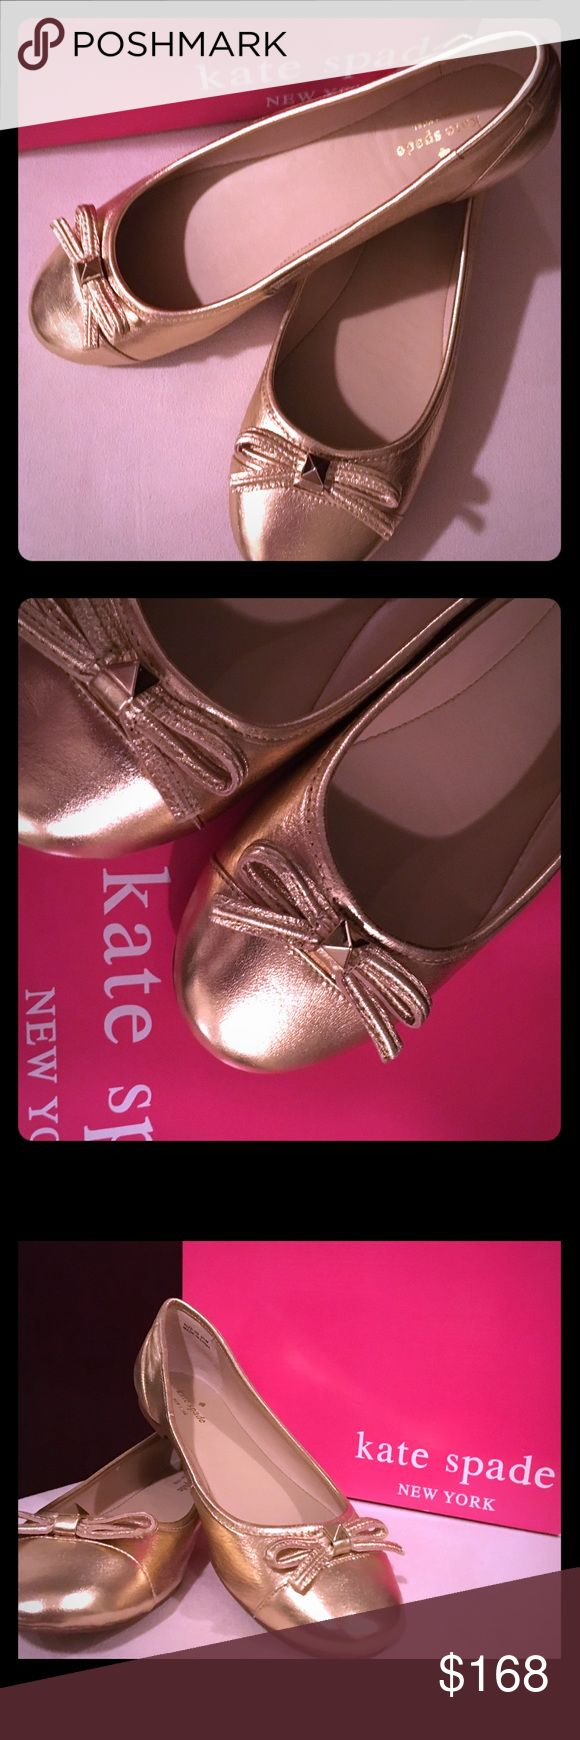 NWT Adorable Kate Spade Gold Ballet Flats Sz 9.5 NWT Adorable Kate Spade Gold Ballet Flats Sz 9.5; Rounded Toe; Bow on Front; Playfully Chic and Comfy Kate Spade Flats! Never Worn; Comes with Kate Spade Signature Box (Were Sold in Box with a Different Style Sticker on Box, so Don't worry when you see sticker. The correct shoes will be inside!) kate spade Shoes Flats & Loafers